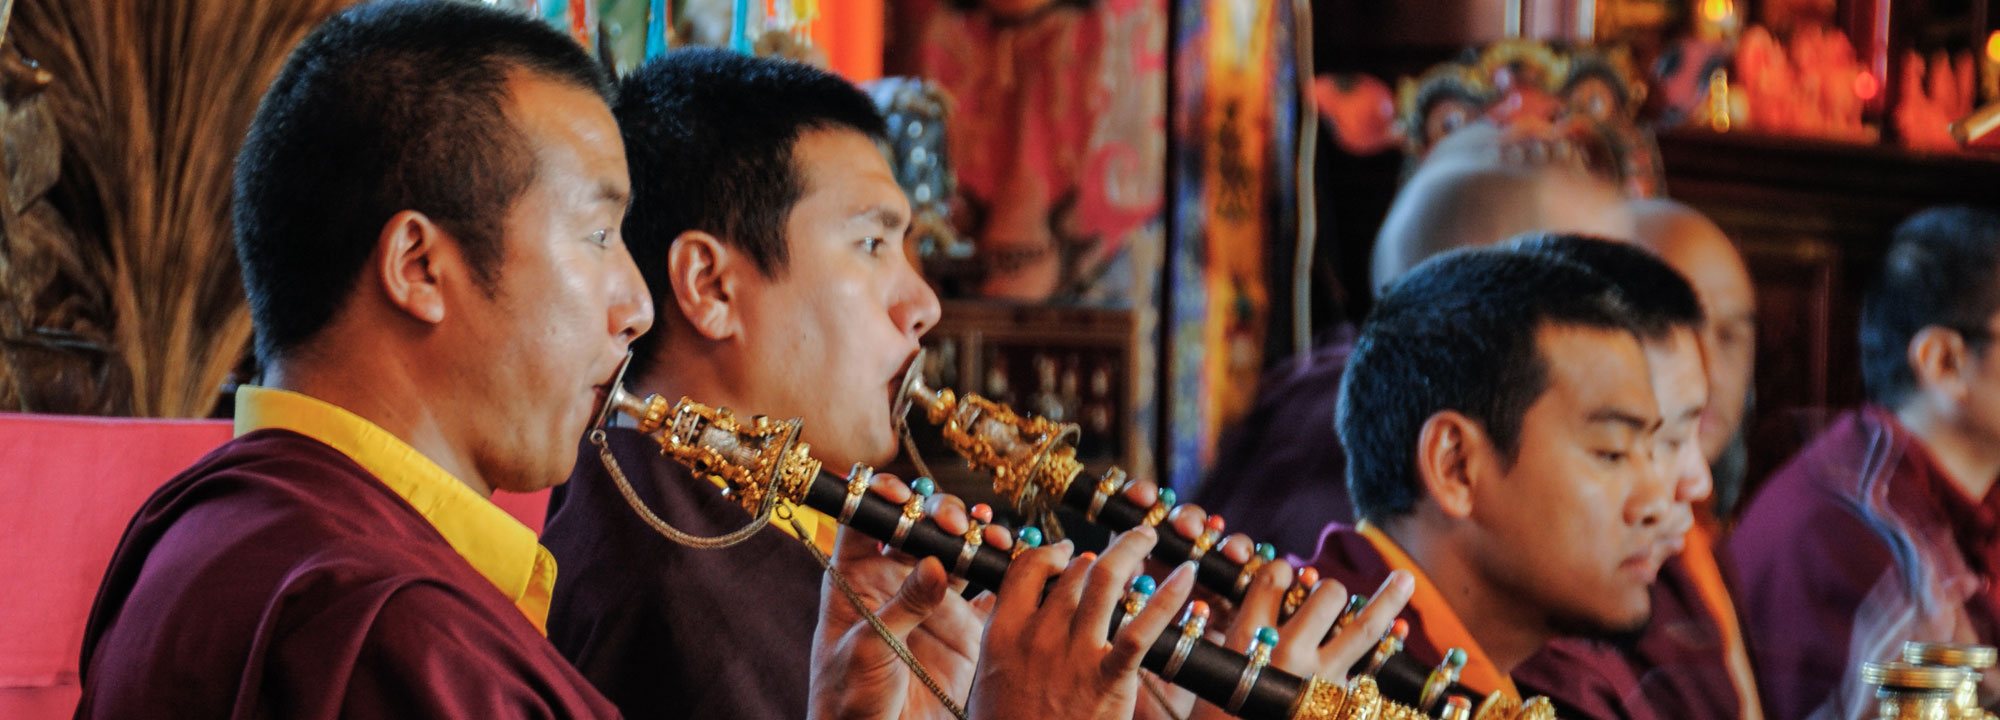 Monks - Palyul Foundation of Canada